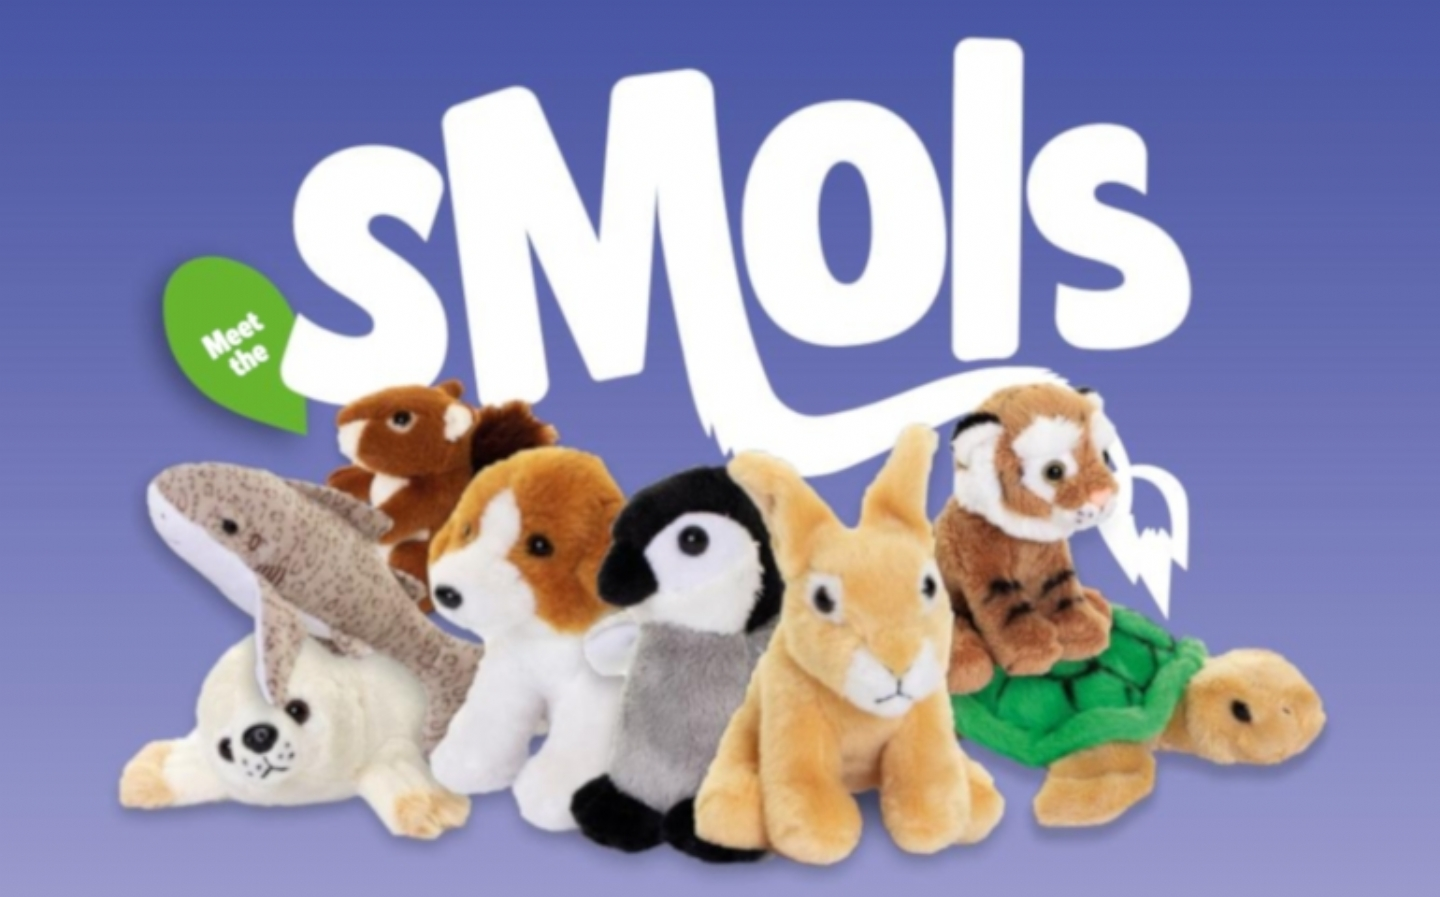 Keycraft welcome SMOLS eco-friendly soft toys to range